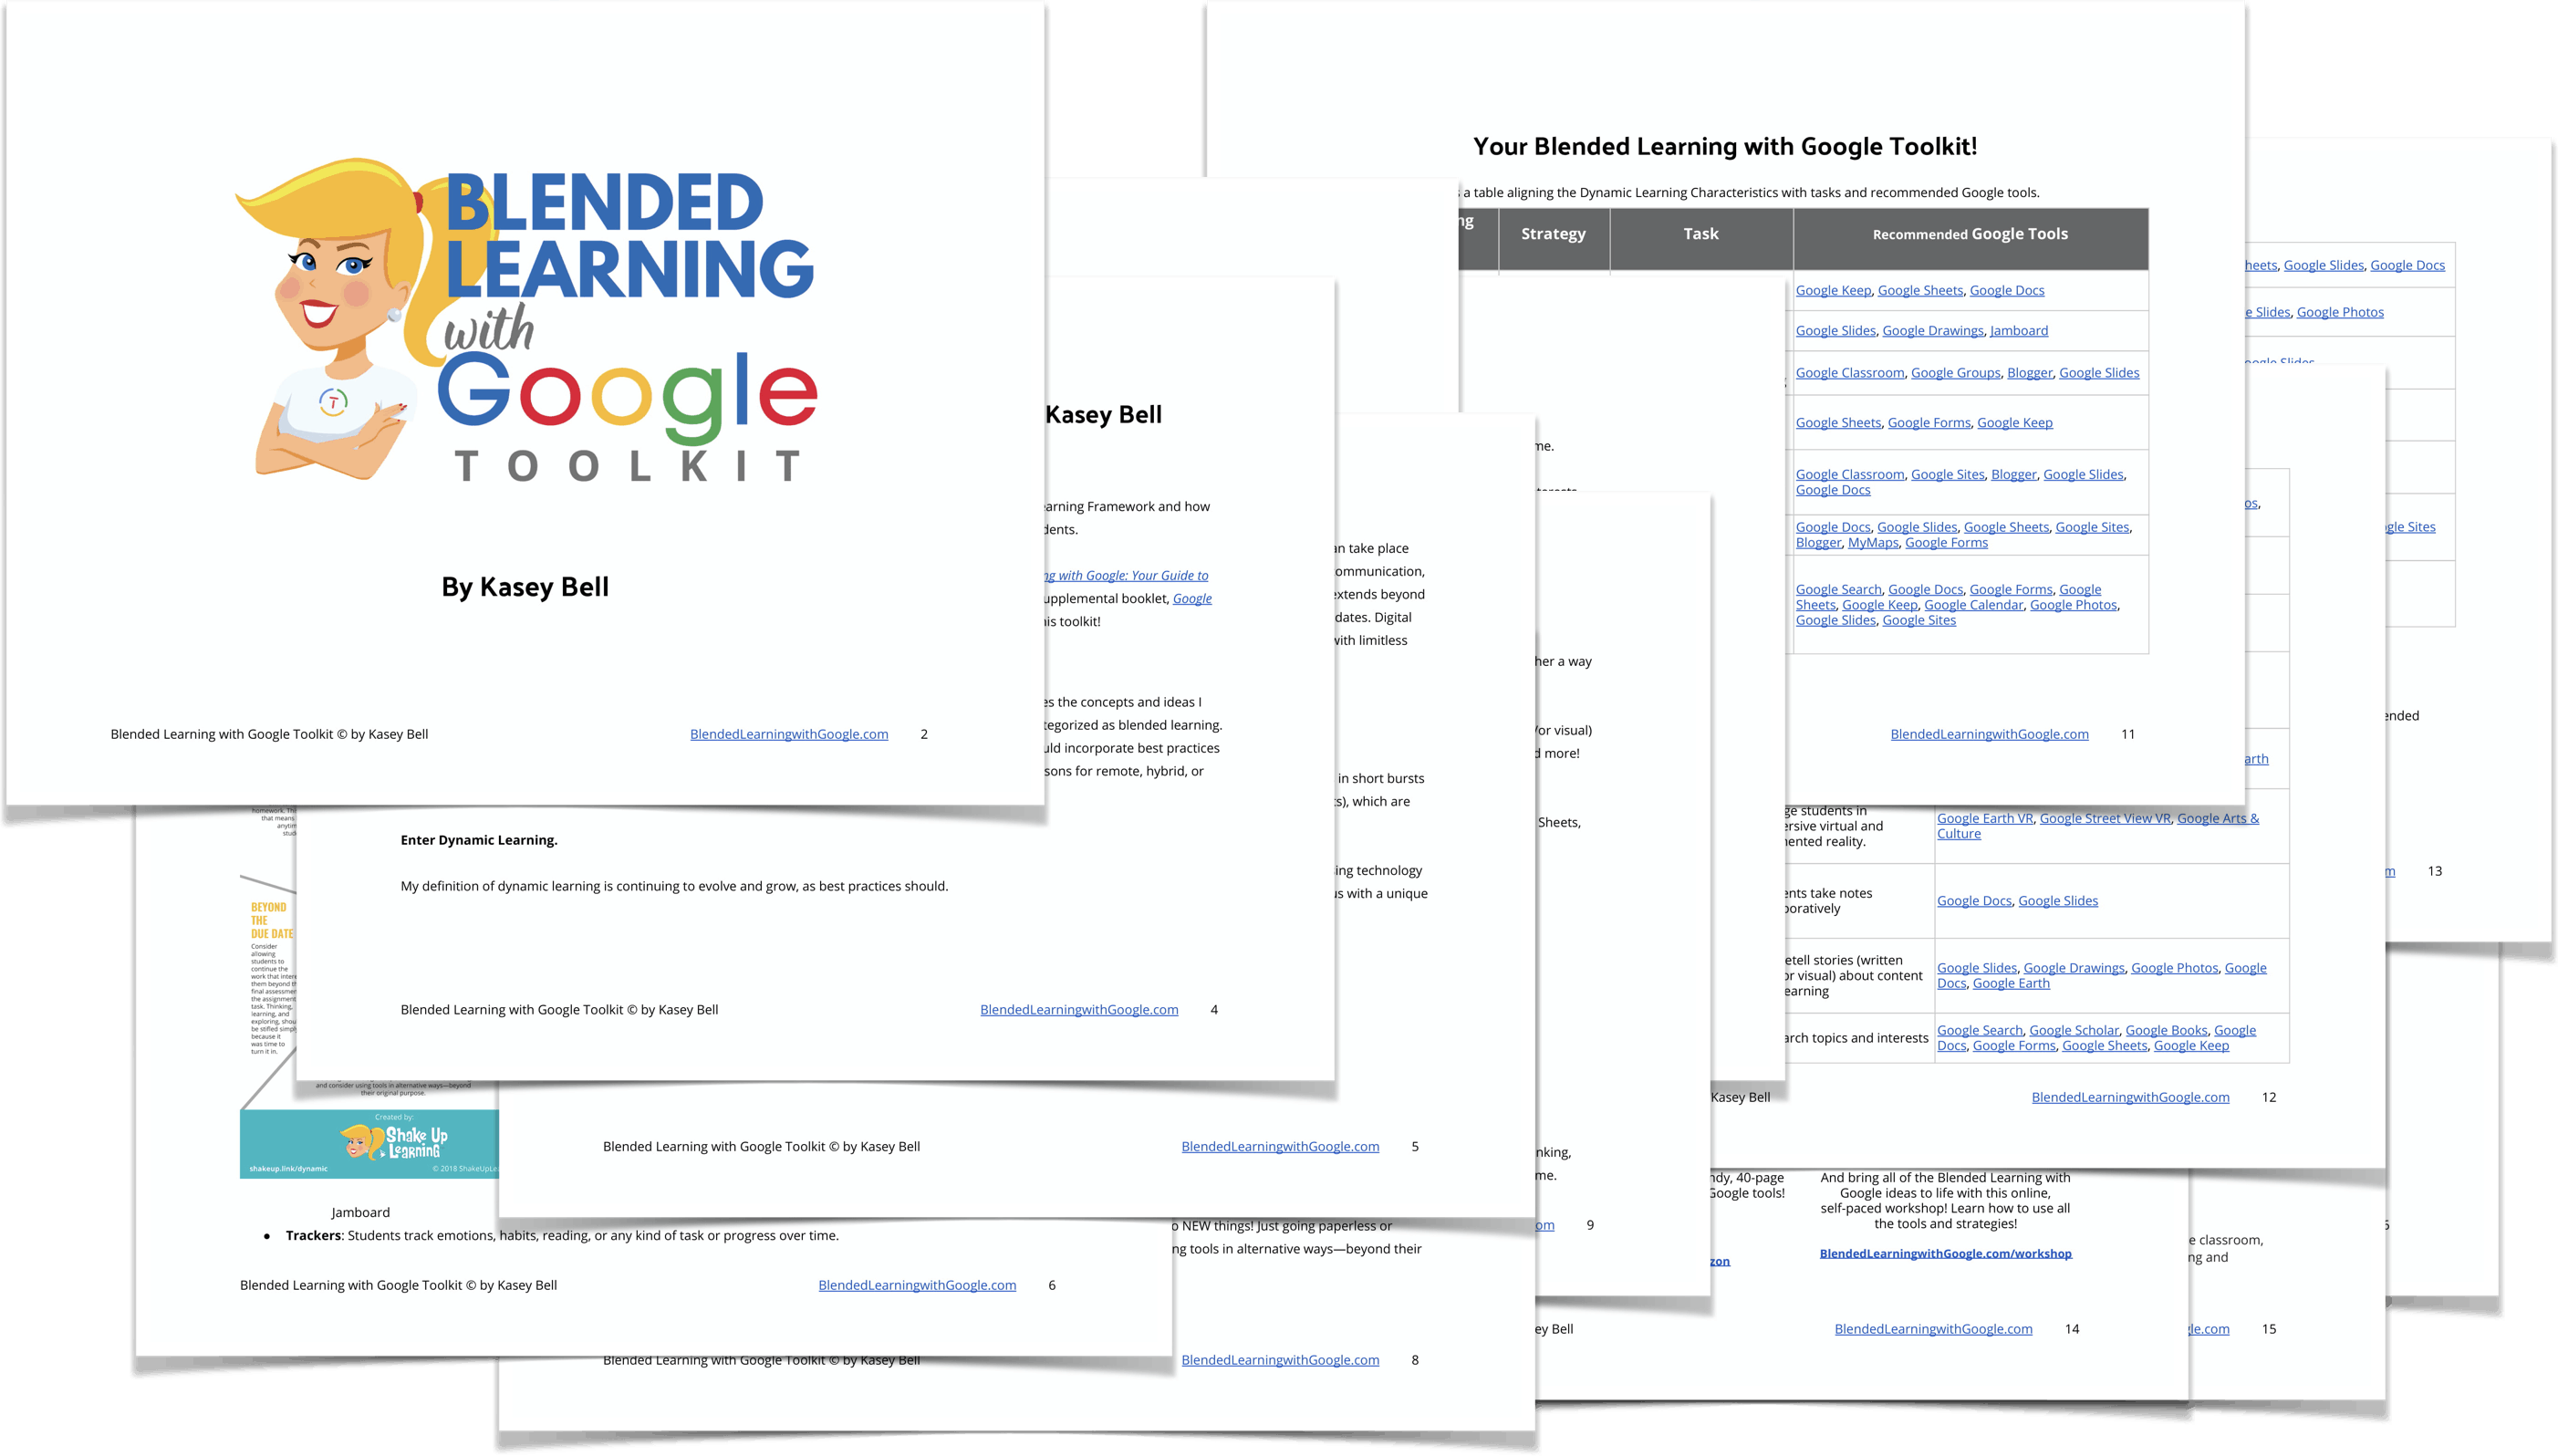 Blended Learning with Google Toolkit for Teachers